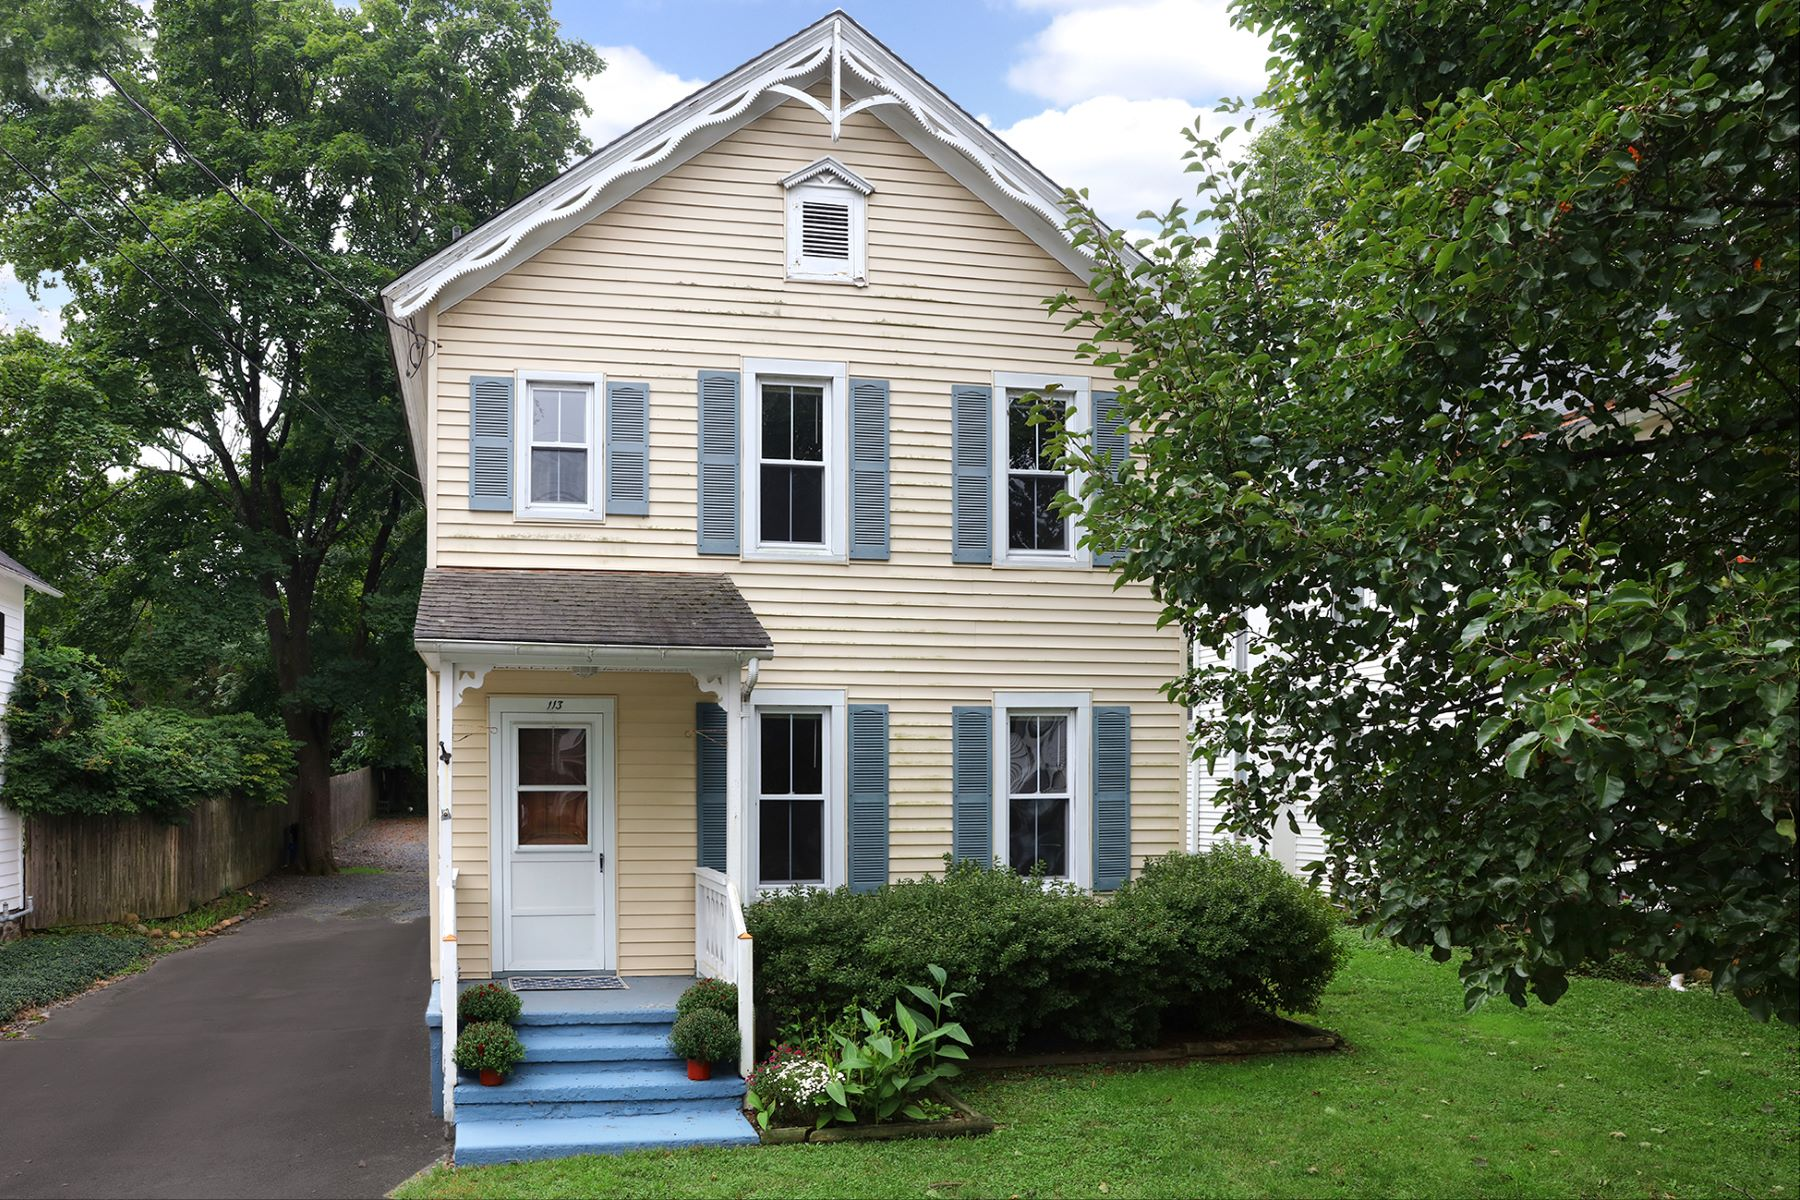 Single Family Home for Sale at Character In The Heart Of Rocky Hill 113 Washington Street, Rocky Hill, New Jersey 08553 United StatesMunicipality: Rocky Hill Borough